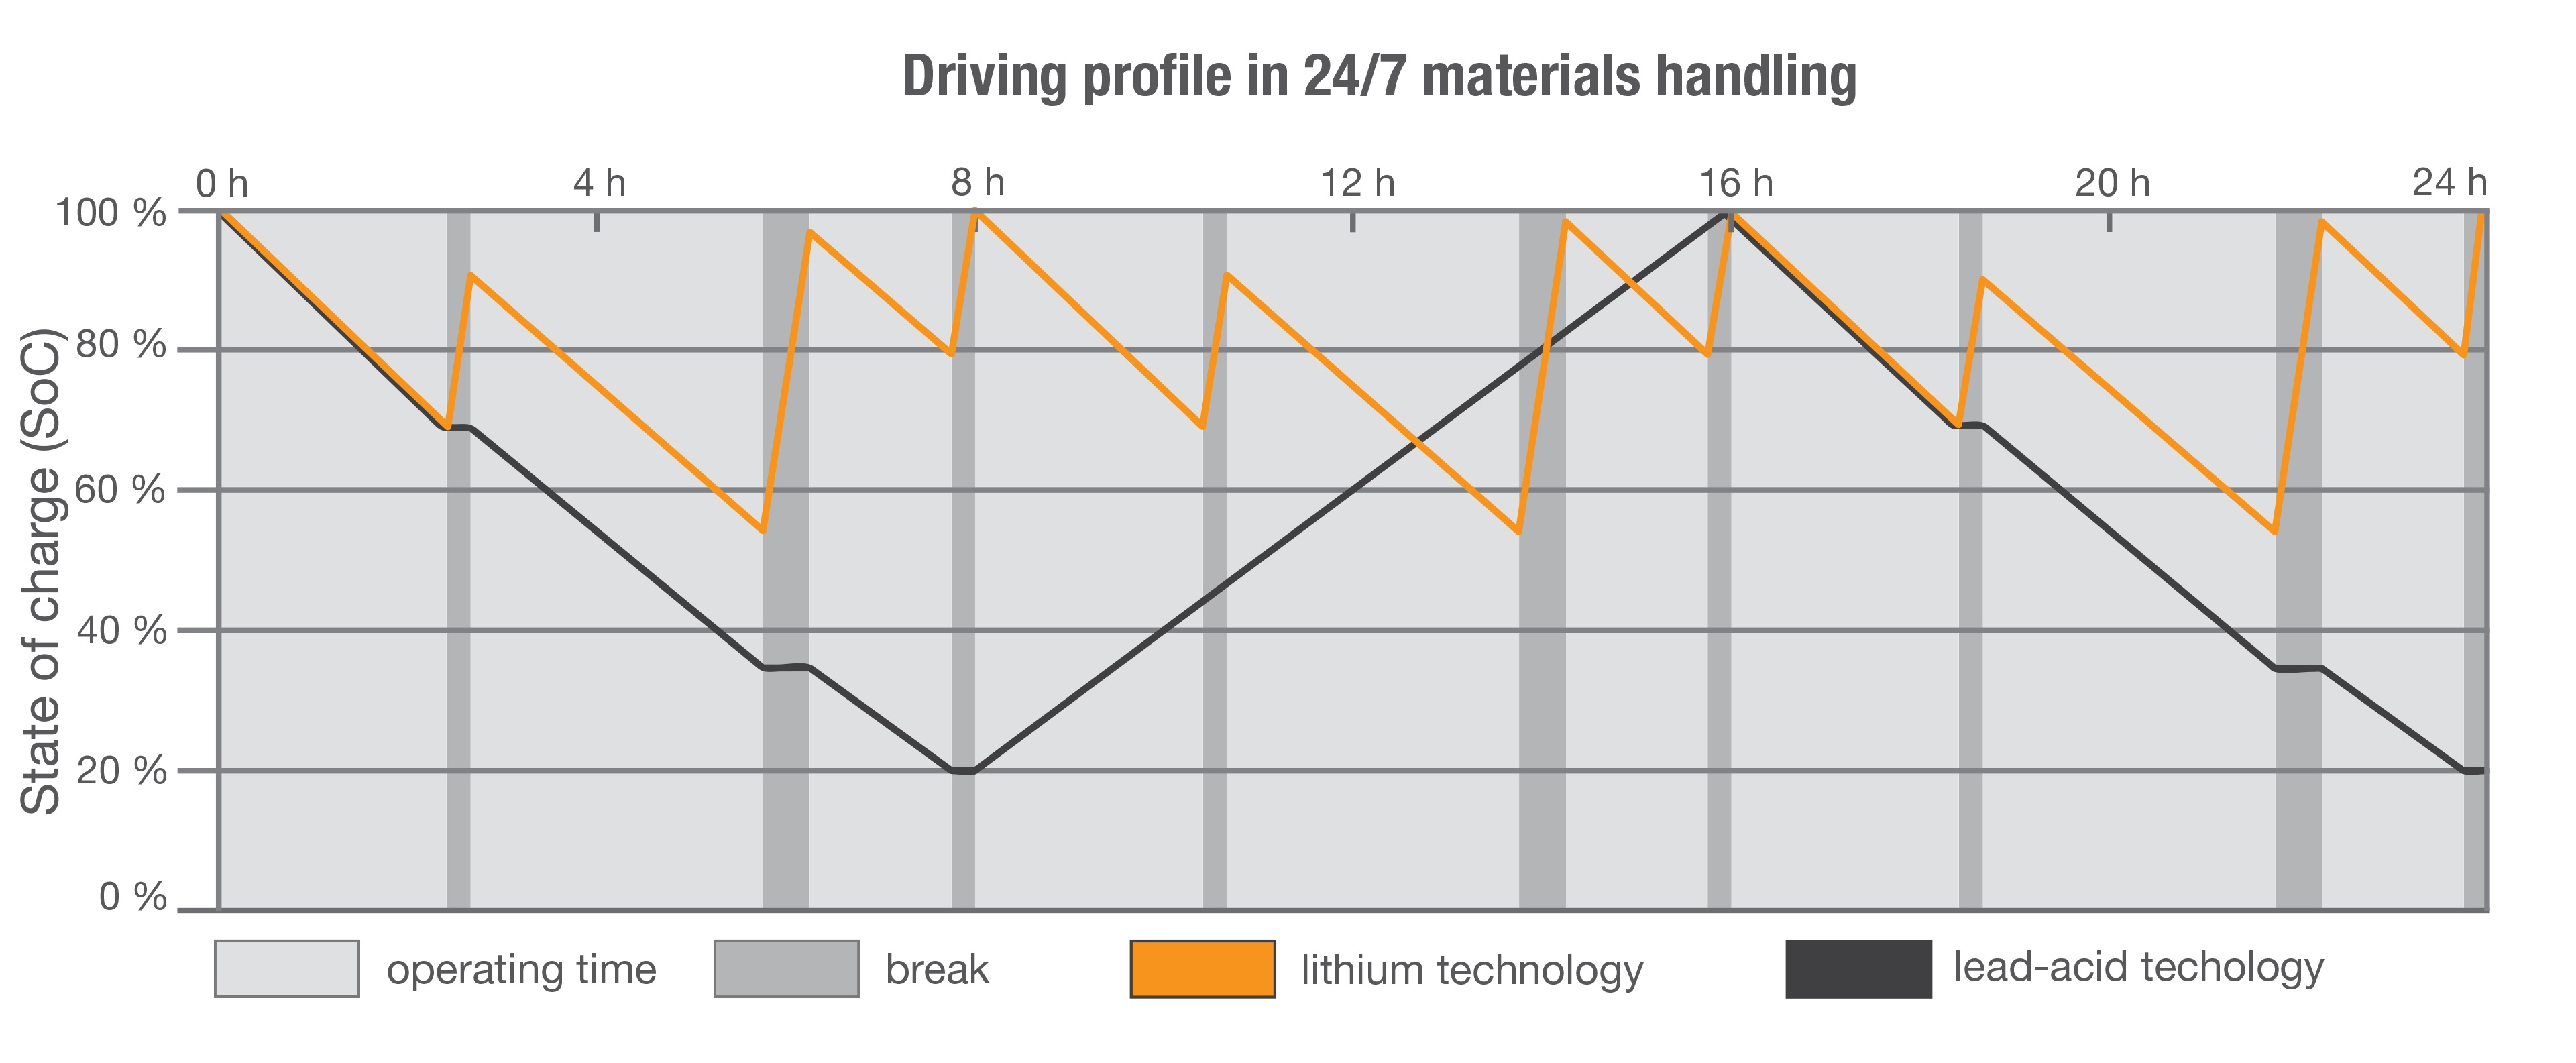 Driving profile in material handling